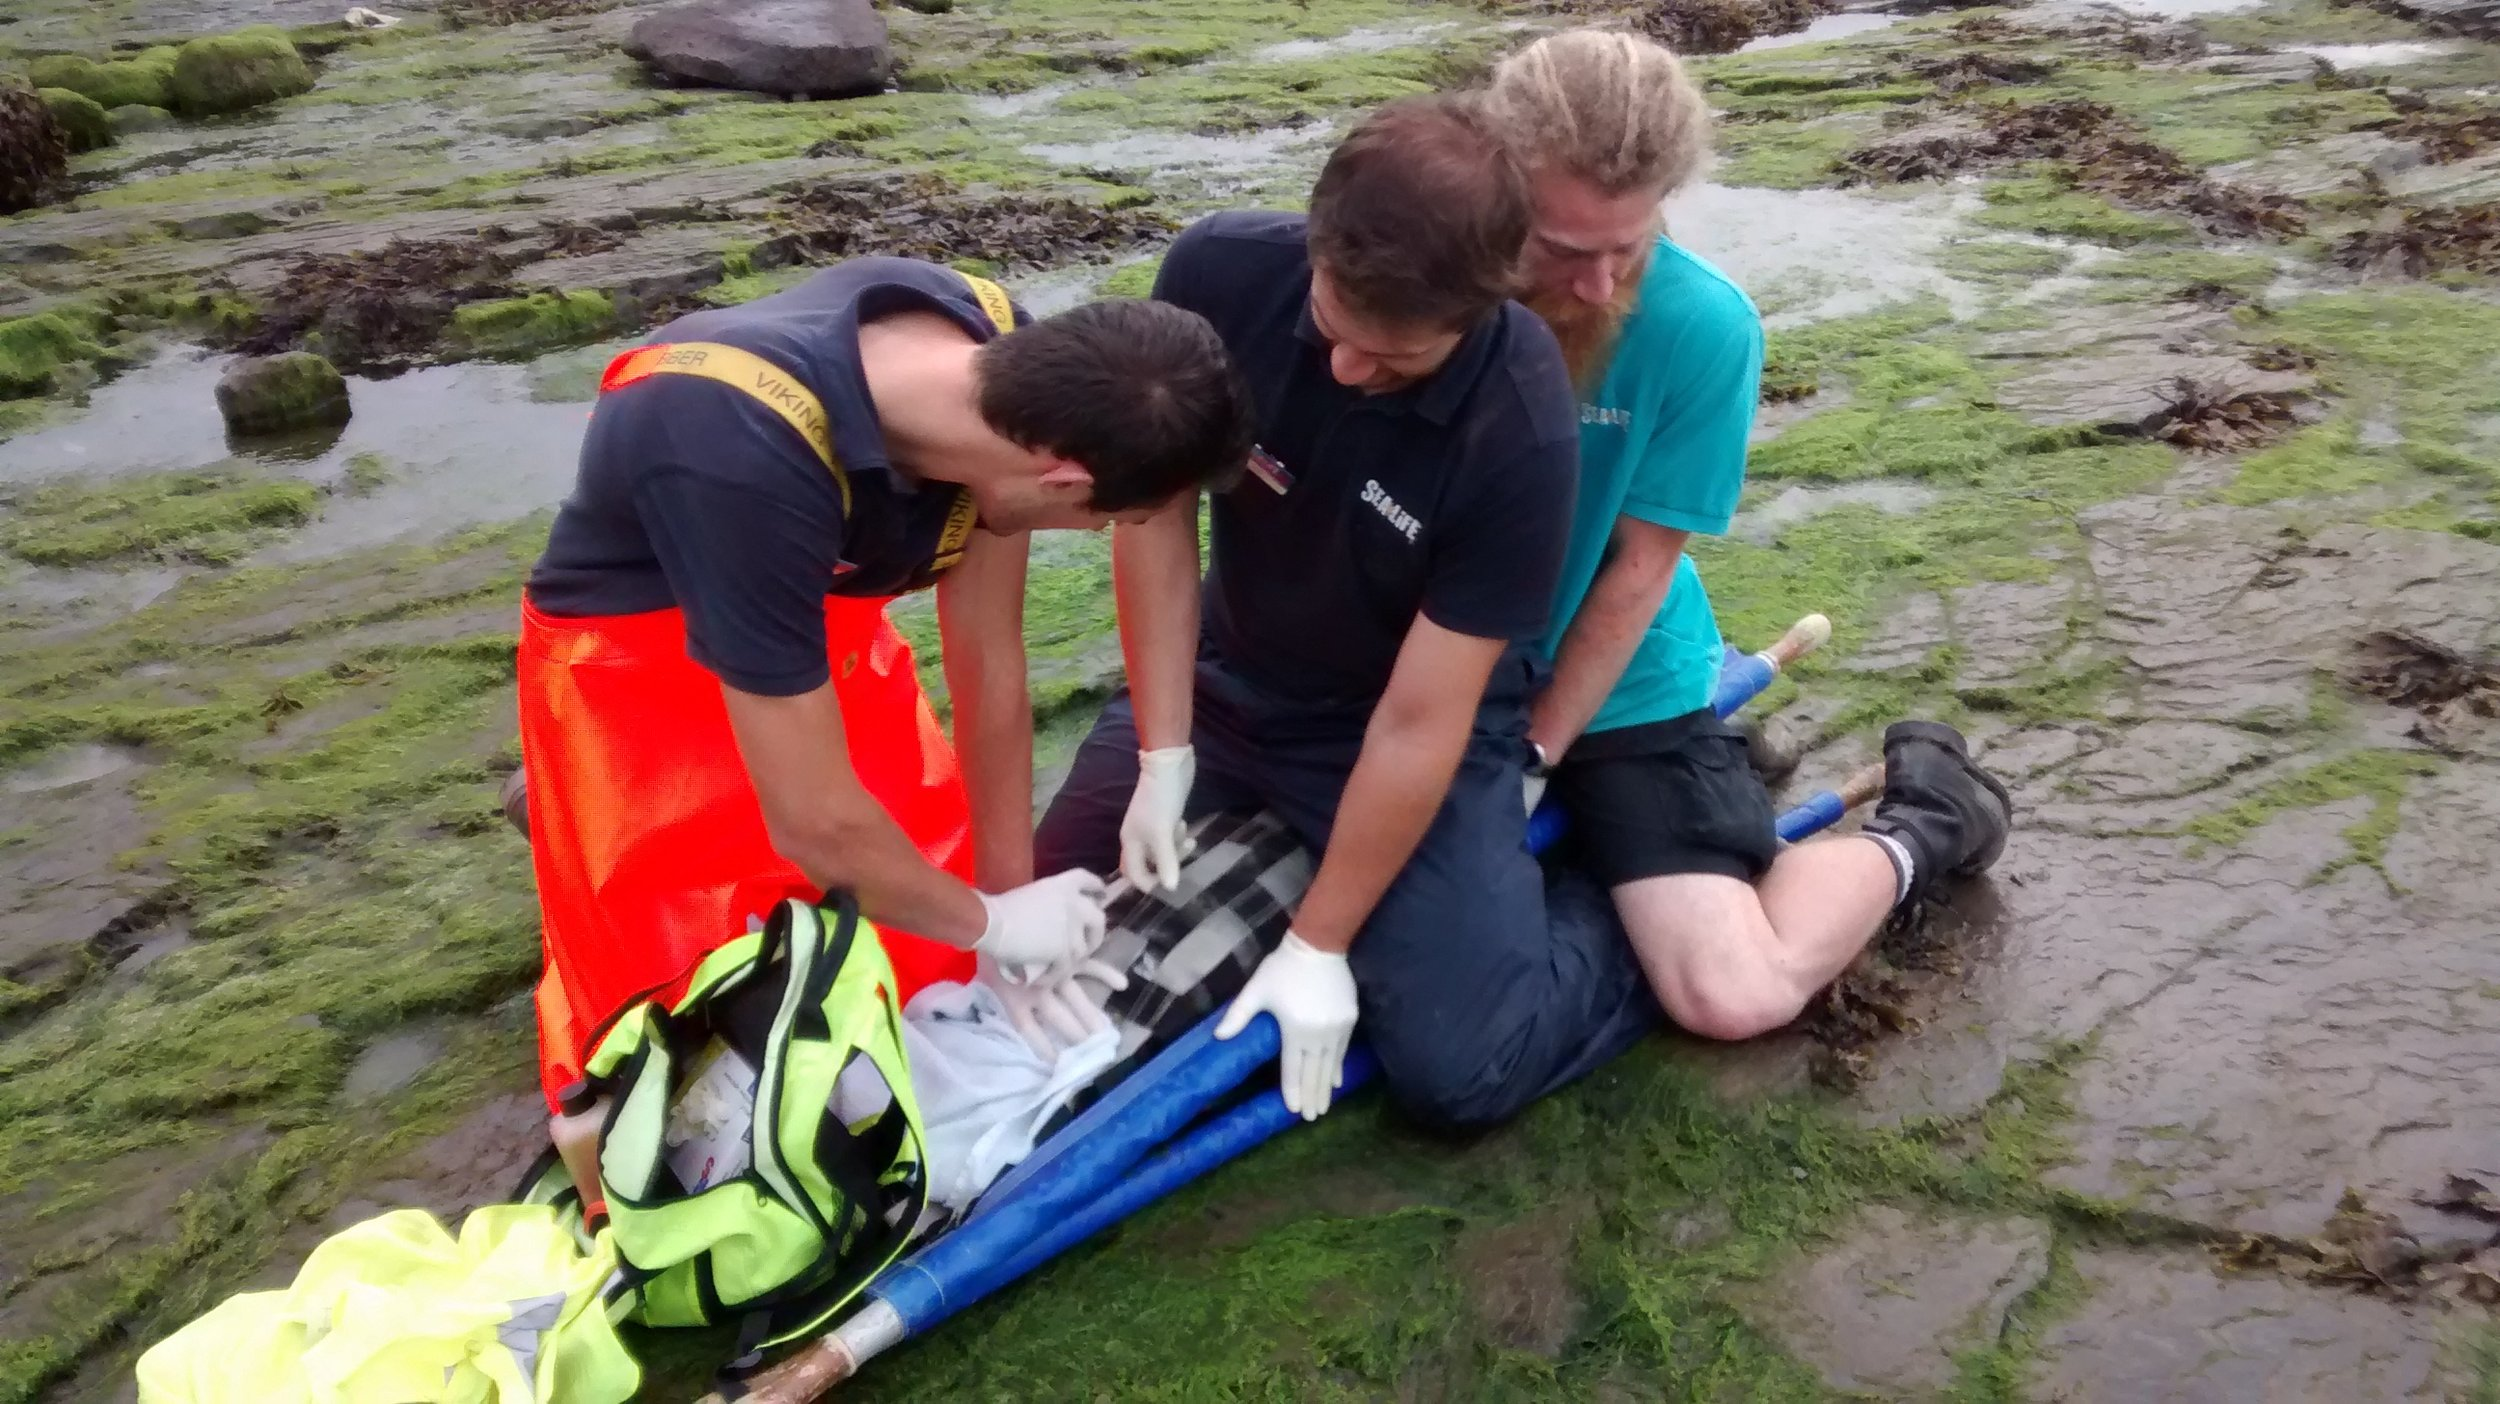 The large injured seal was secured in a stretcher for the operation. photo: rspca